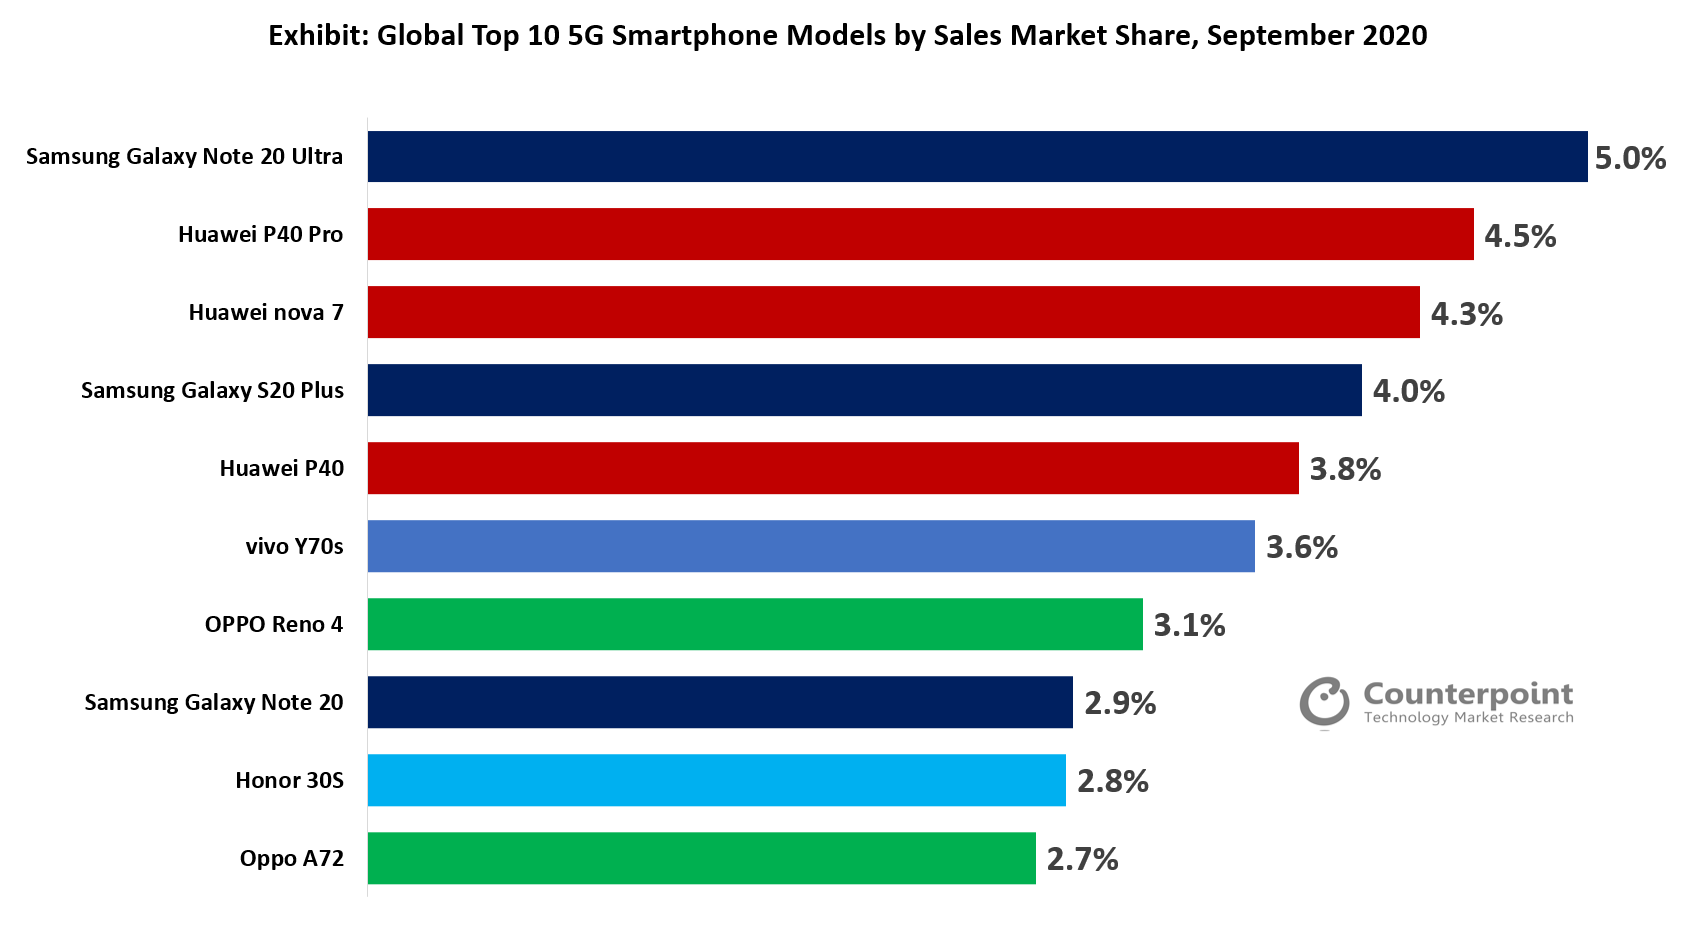 Counterpoint - Global Top 10 5G Smartphone Models by Sales Market Share, September 2020